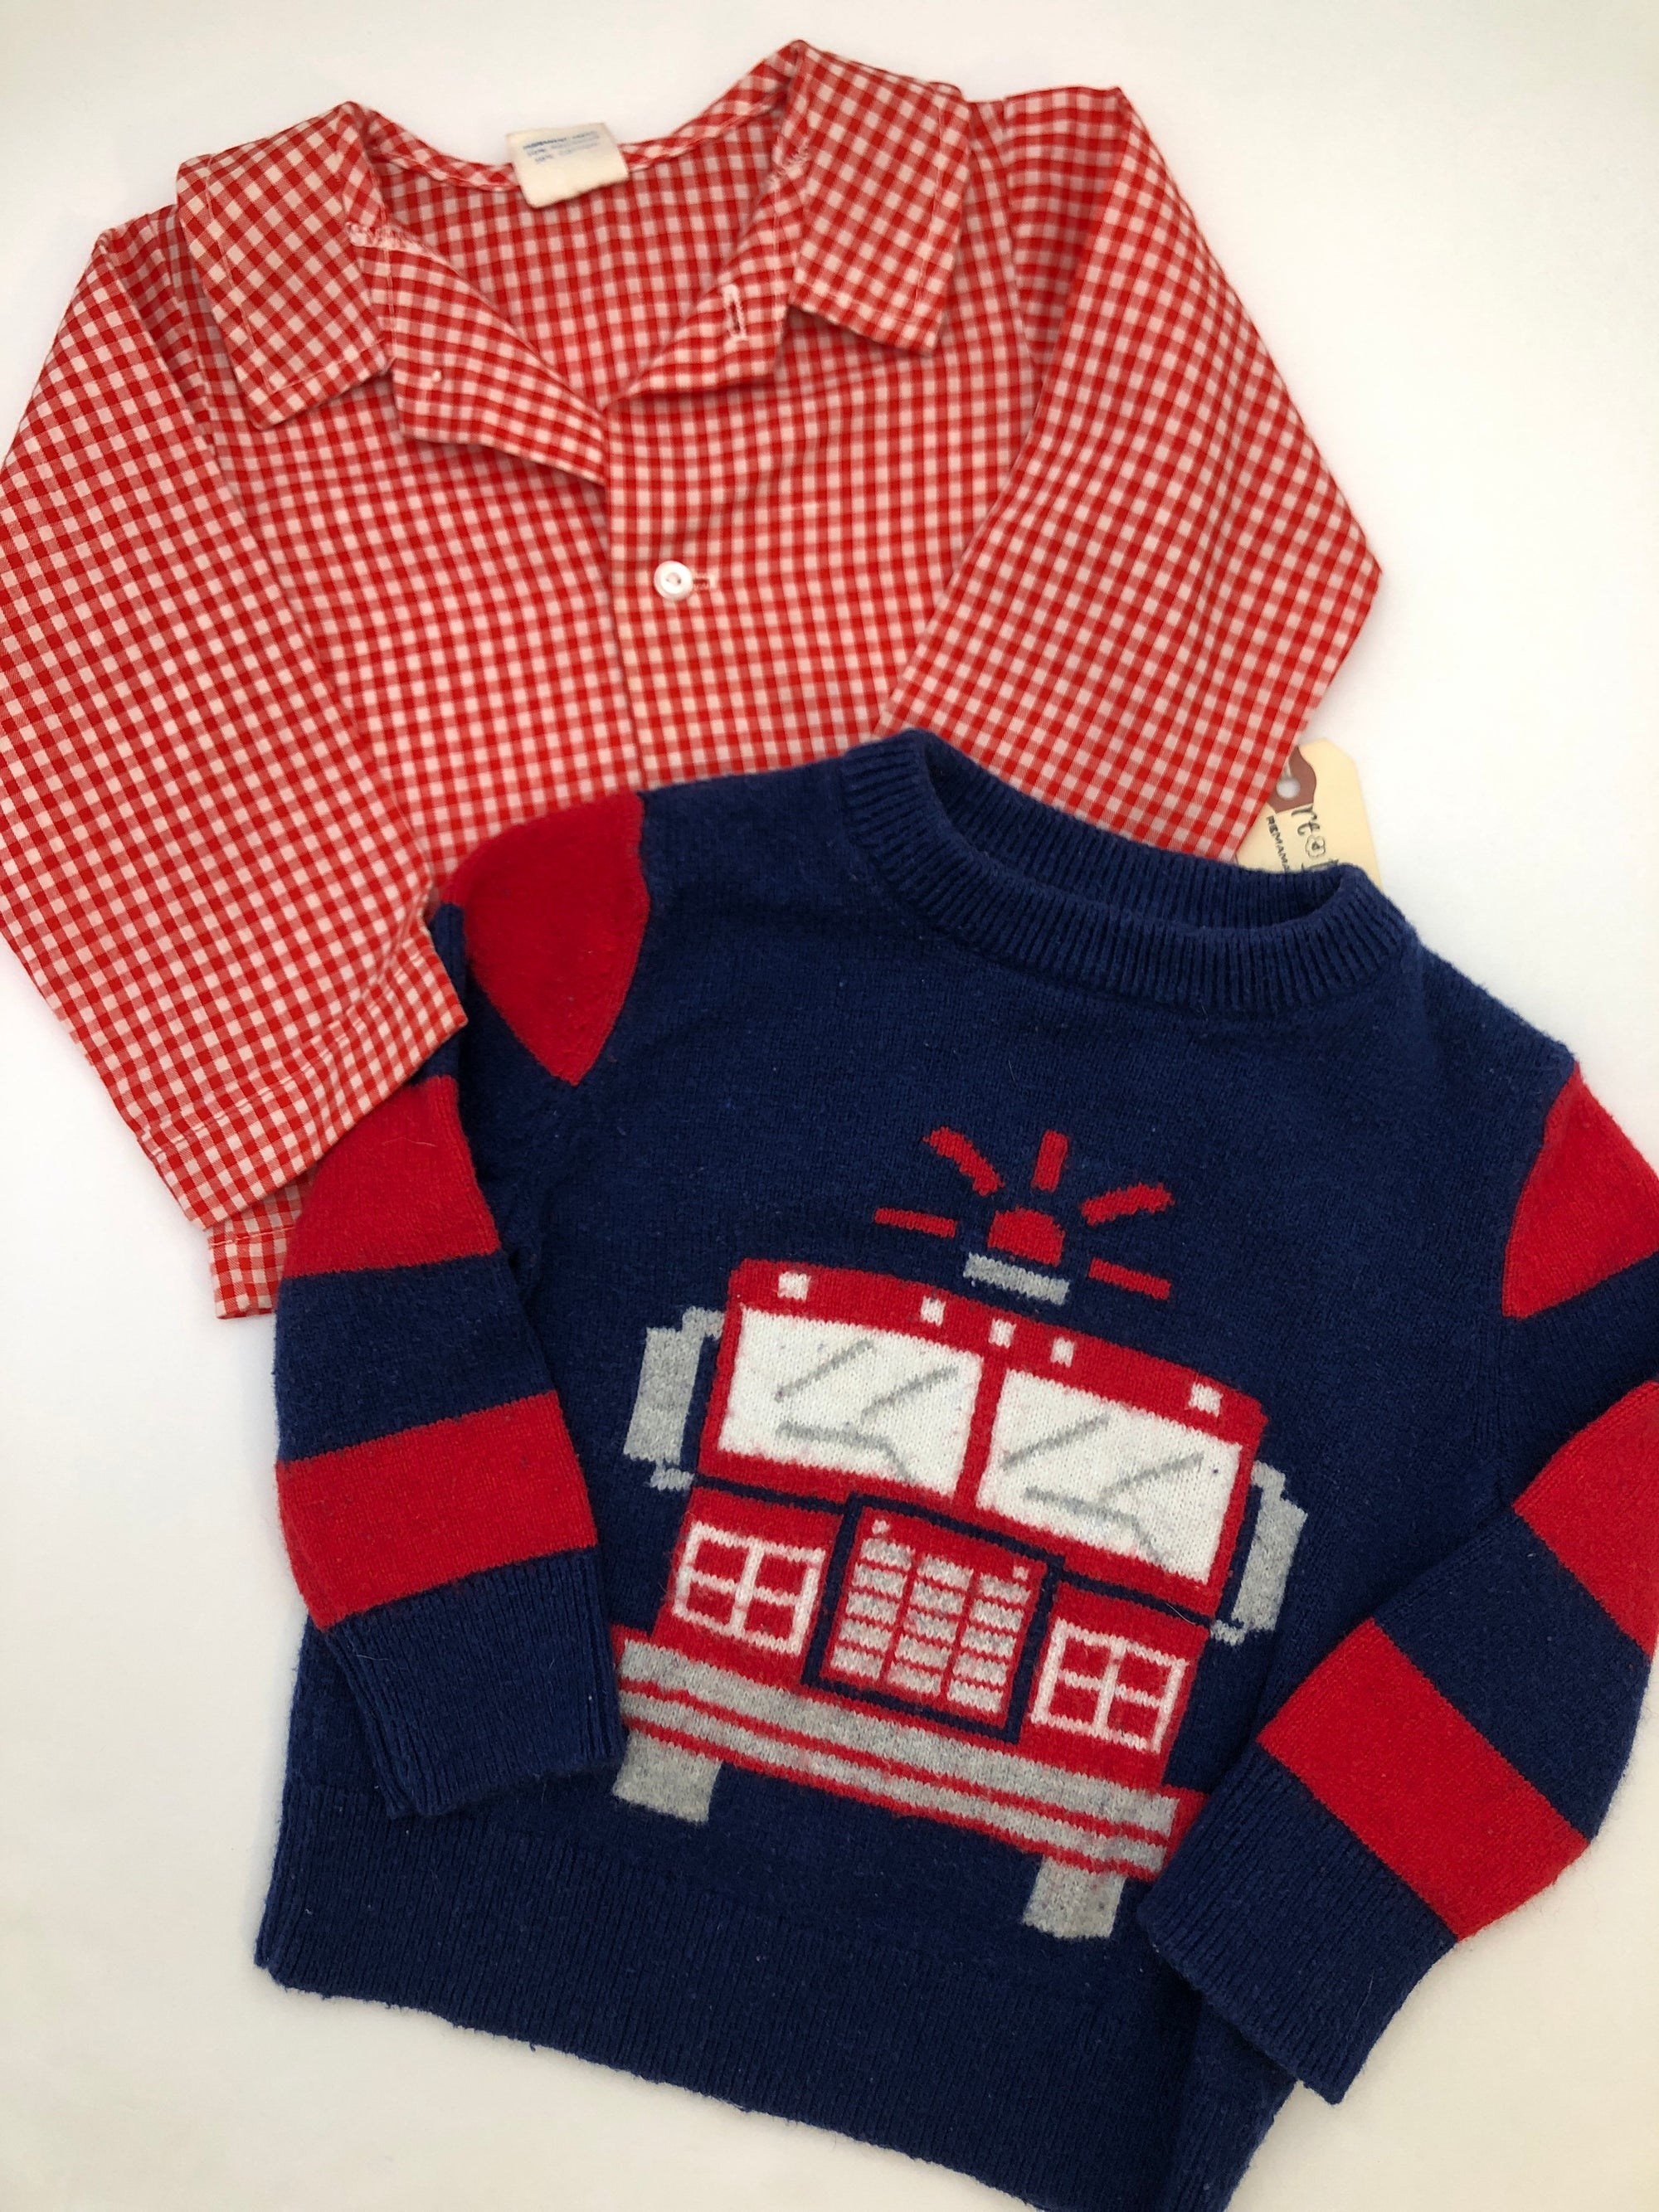 Resale 18-24 m Baby Gap Fire Truck Sweater & Vintage Red Gingham Shirt Set